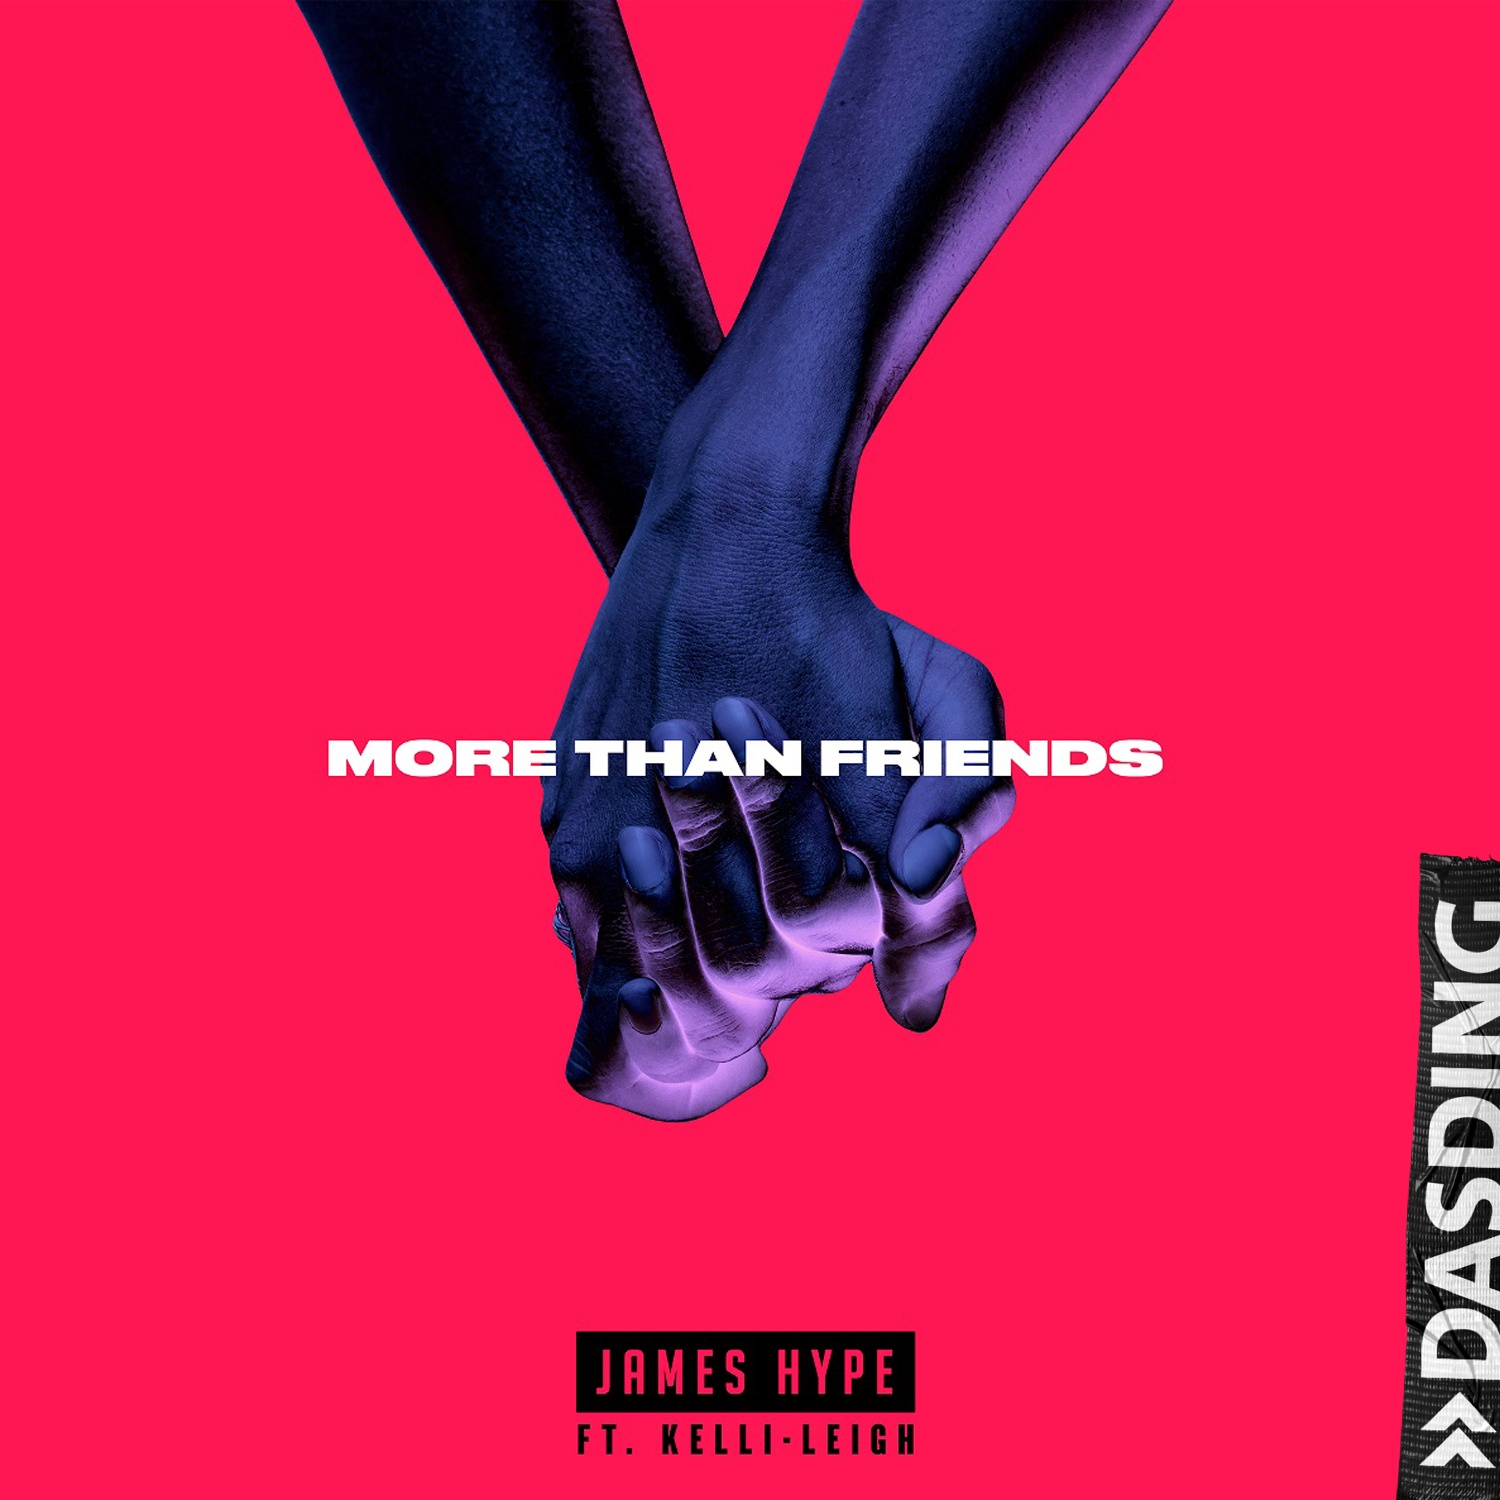 More than friends (Foto: James Hype)